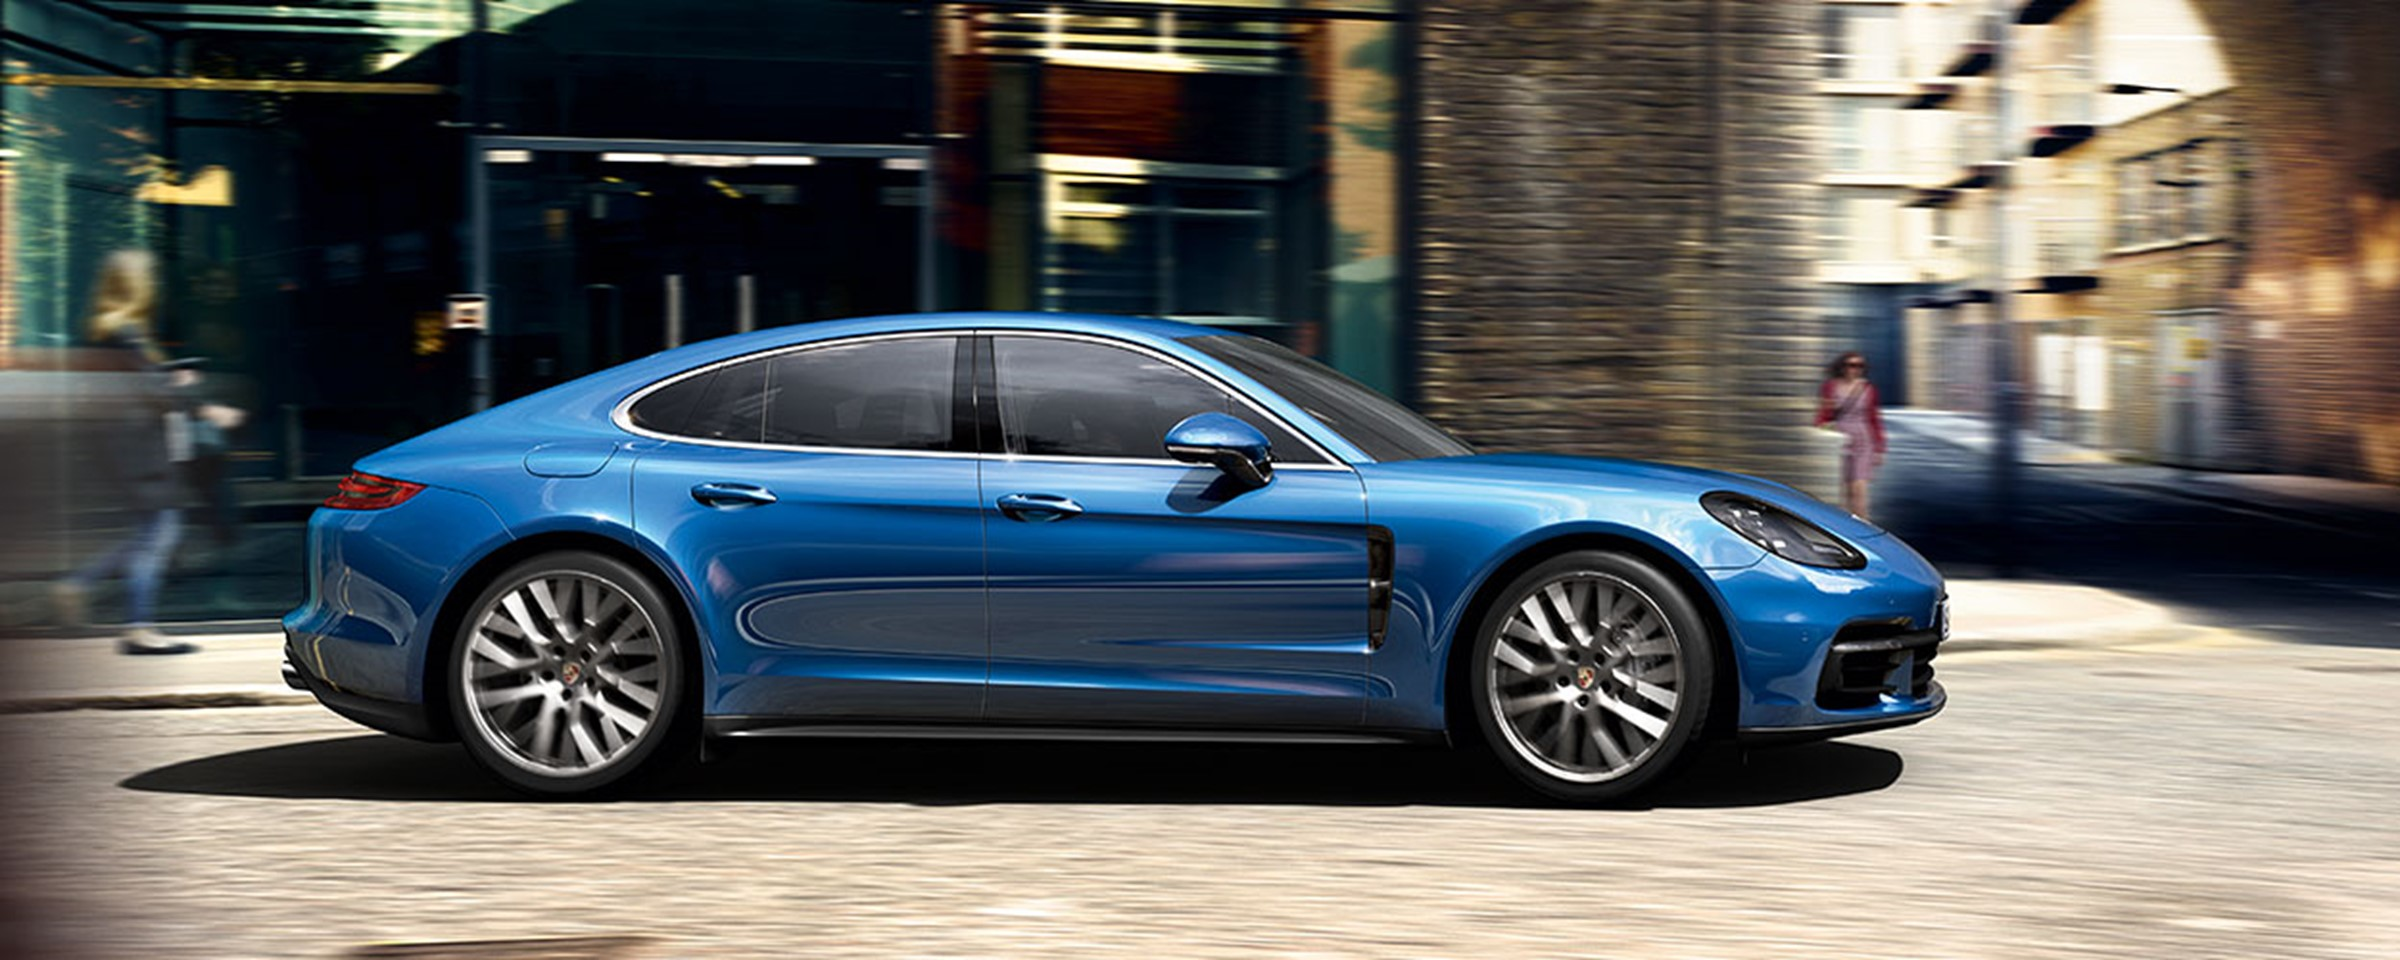 The New Porsche Panamera 4s Indigo Auto Group Blog